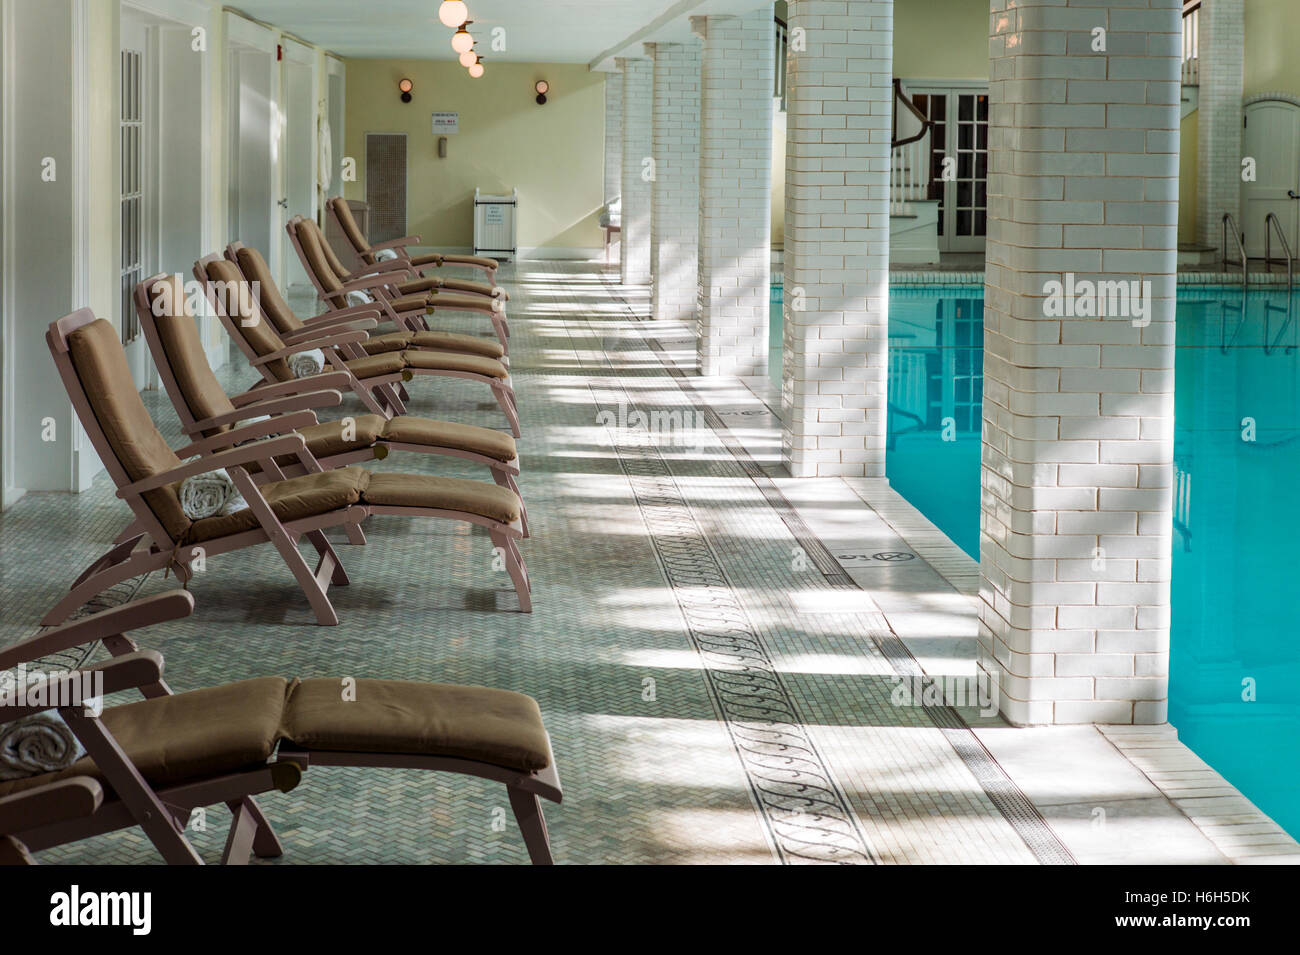 Chaise Lounges; interior spring-fed swimming pool; Omni Bedford Springs Resort & Spa; Bedford; Pennsylvania; - Stock Image